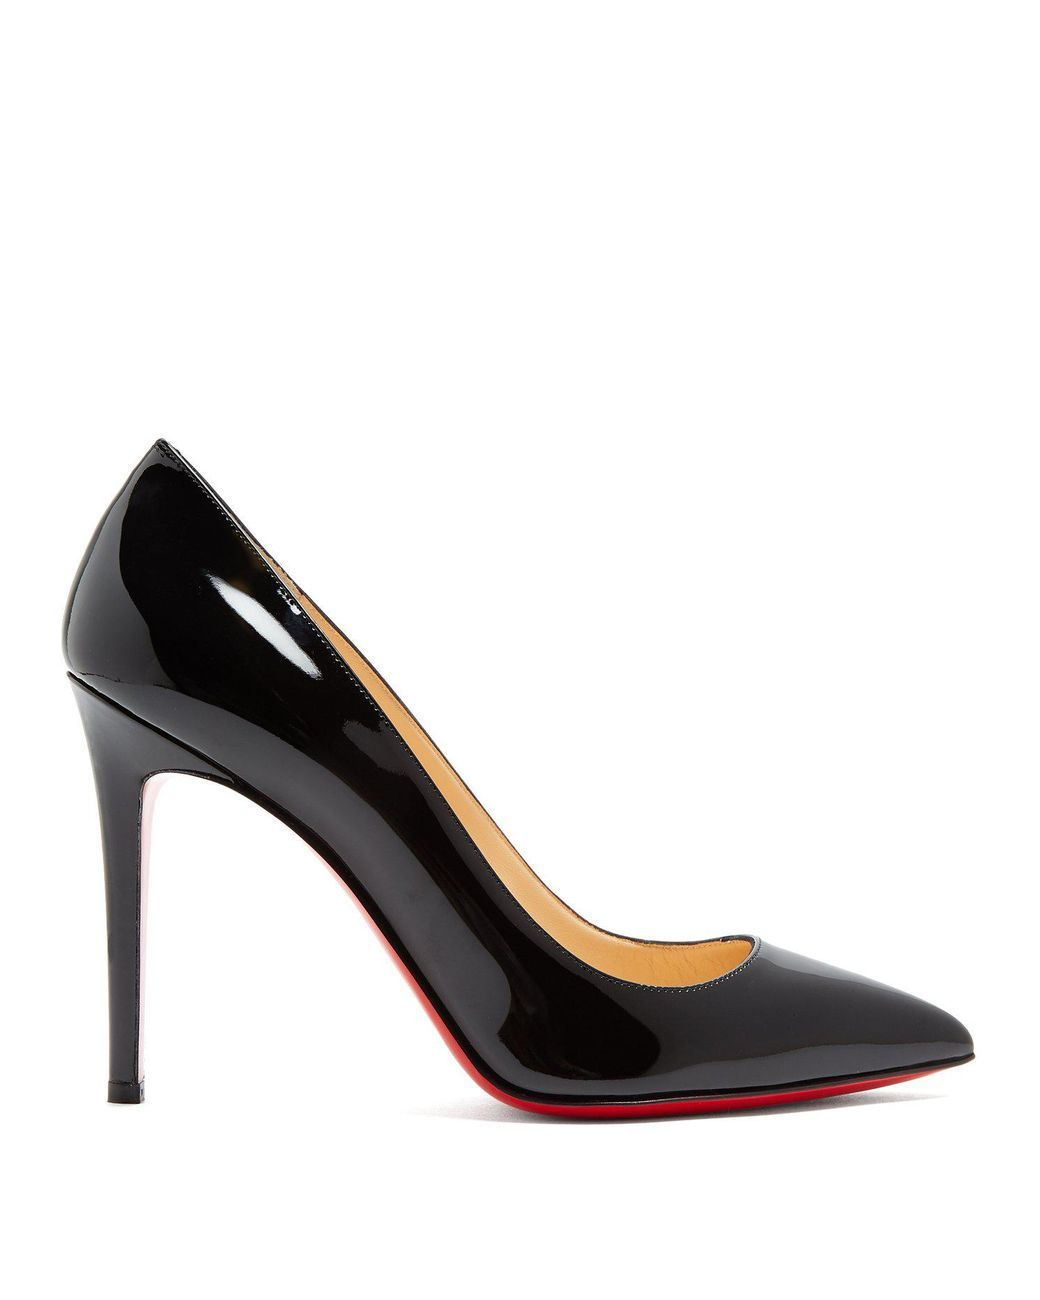 0e28f4ce2f8 Christian Louboutin - Black Pigalle 100mm Patent-leather Pumps ...